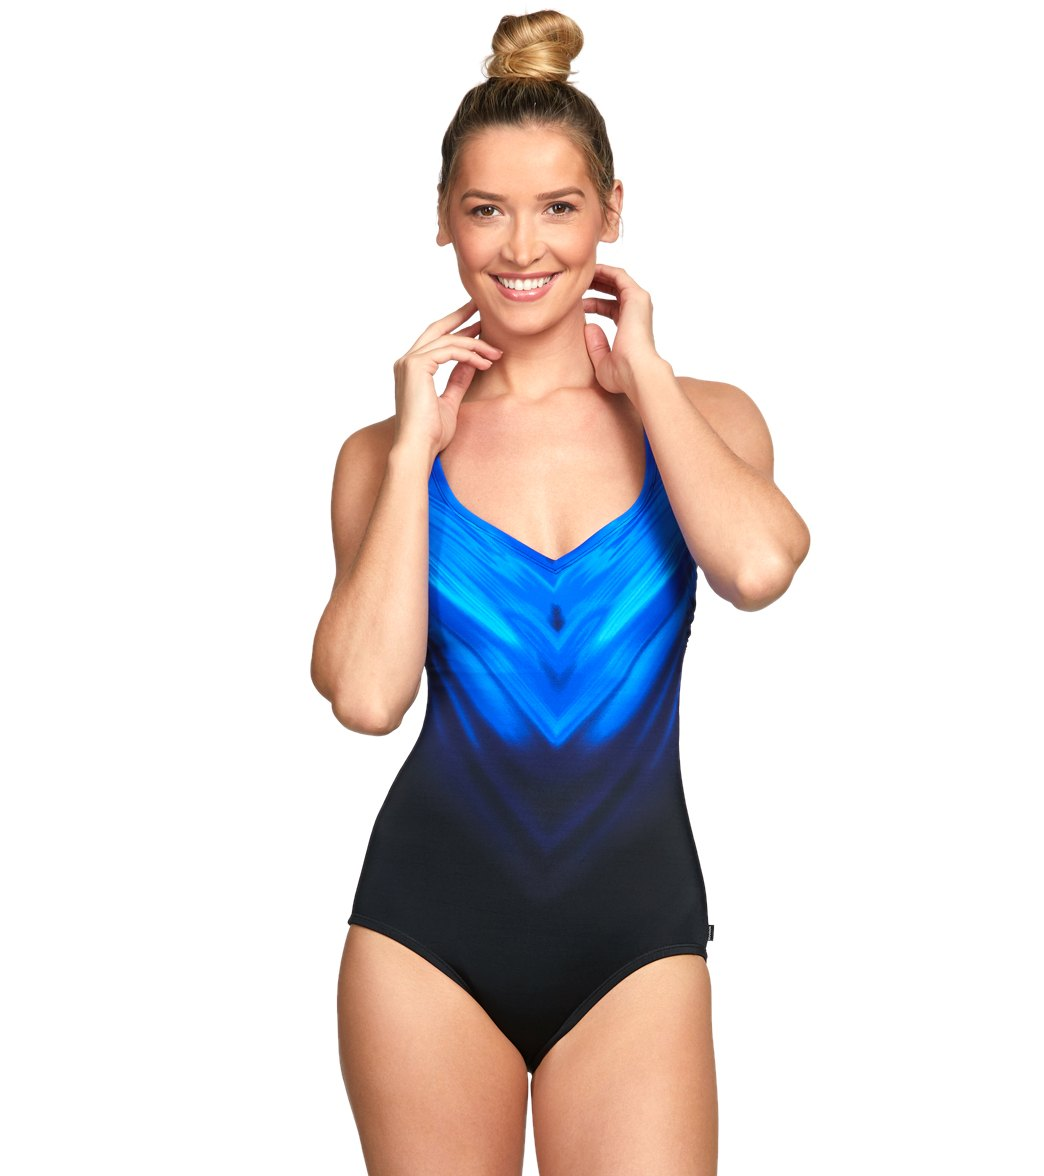 7708779a4ff75 Reebok Chevron Shield Vneck Chlorine Resistant One Piece Swimsuit at  SwimOutlet.com - Free Shipping